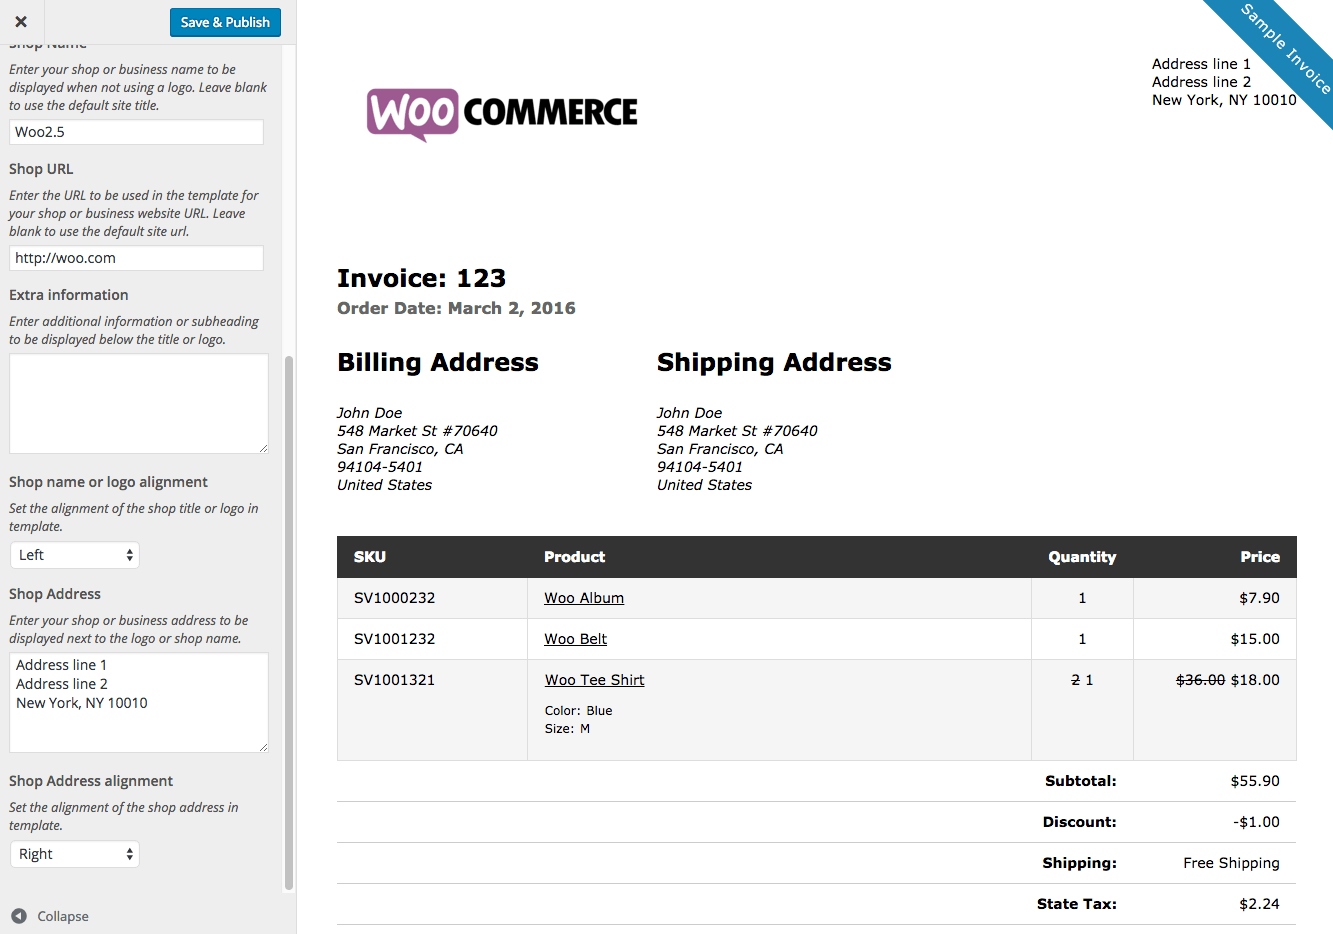 Totallocalus  Winsome Woocommerce Print Invoices Amp Packing Lists  Woocommerce Docs With Engaging Woocommerce Print Invoices  Packing Lists Customizer With Archaic Read Receipt In Outlook  Also Partner Receipt Printer In Addition Babies R Us Exchange Policy No Receipt And Online Receipt Of Lic Premium As Well As Receipt Format For Cheque Payment Additionally Receipt Voucher Template From Docswoocommercecom With Totallocalus  Engaging Woocommerce Print Invoices Amp Packing Lists  Woocommerce Docs With Archaic Woocommerce Print Invoices  Packing Lists Customizer And Winsome Read Receipt In Outlook  Also Partner Receipt Printer In Addition Babies R Us Exchange Policy No Receipt From Docswoocommercecom